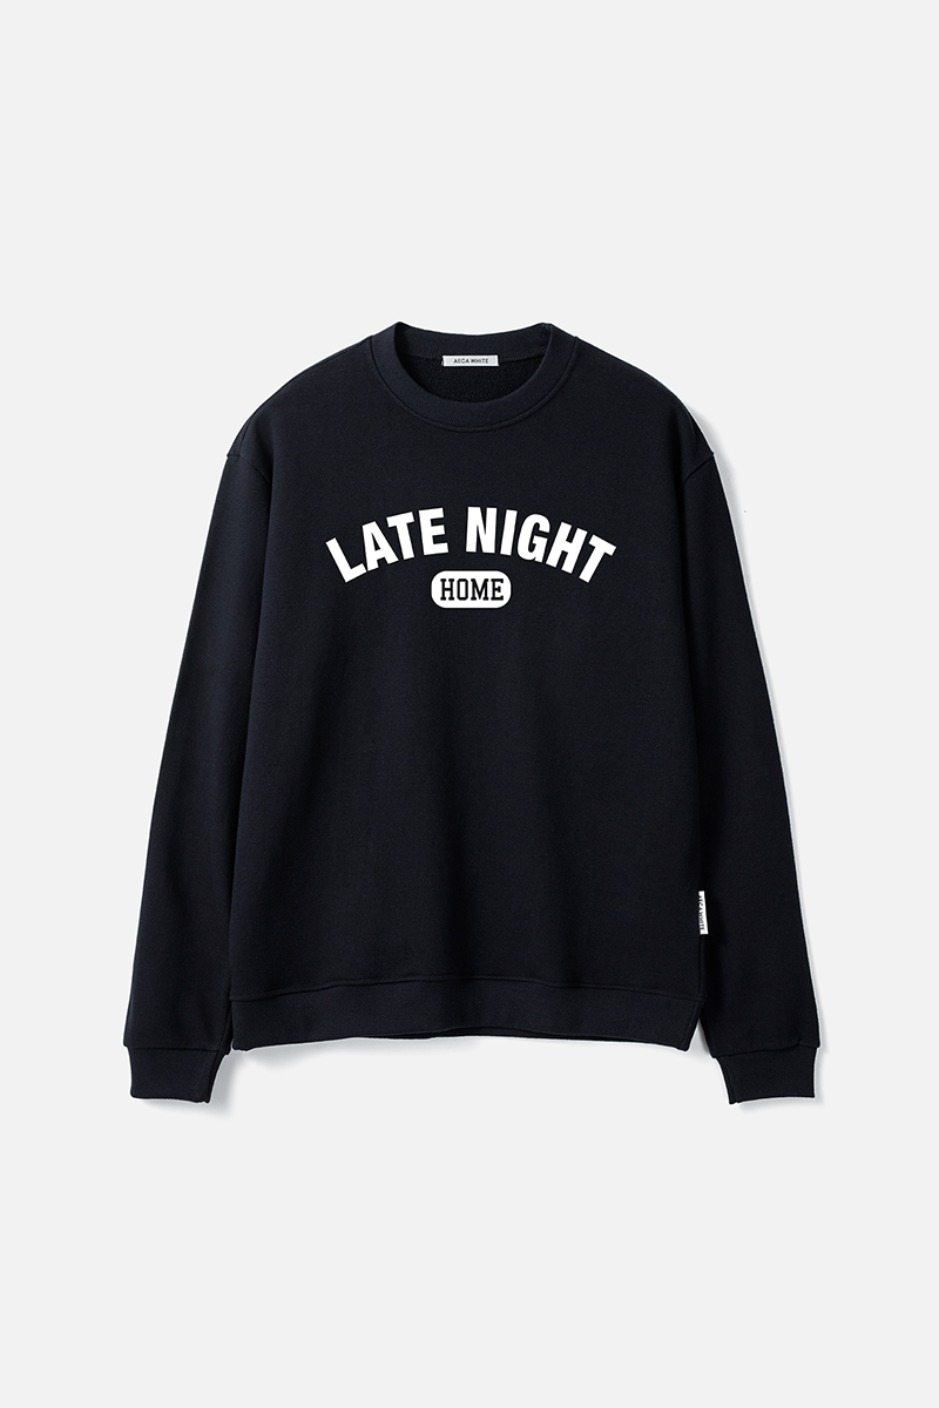 LATE NIGHT SWEATSHIRT-NAVY